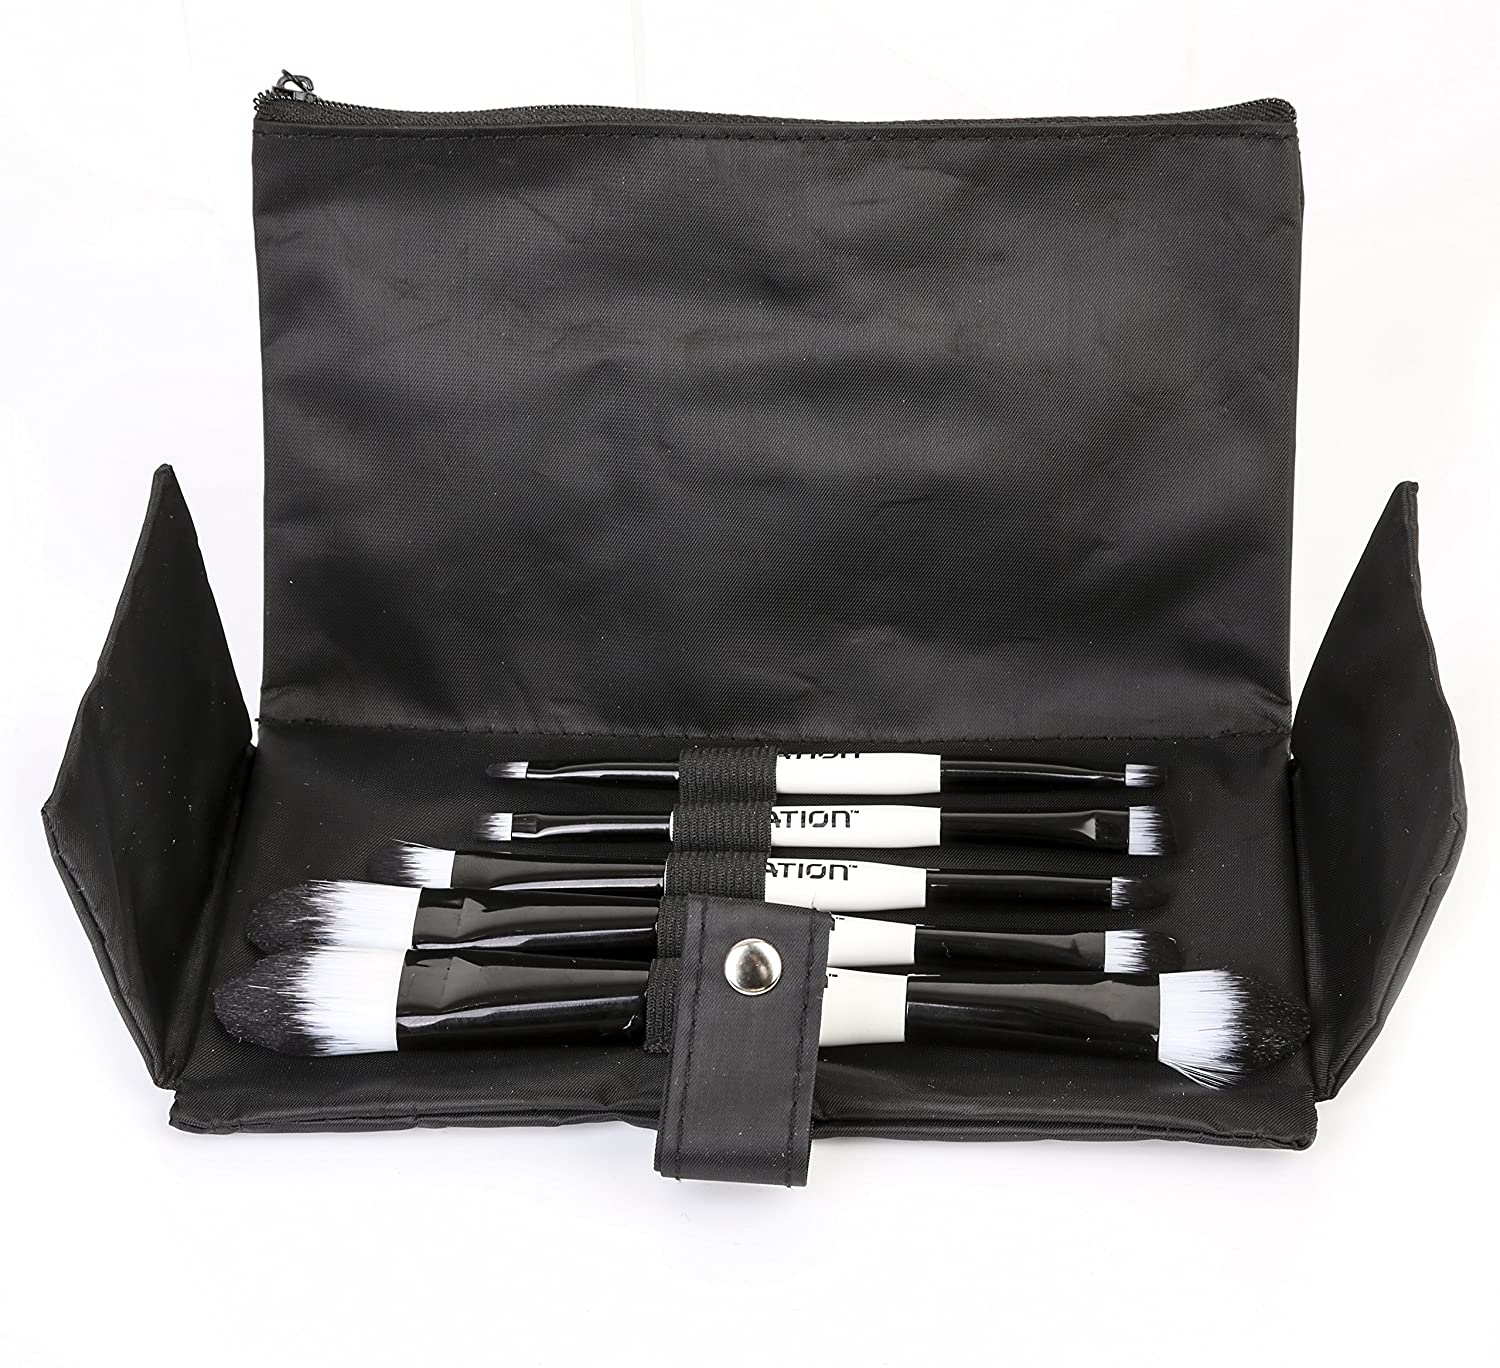 Ivation 5 Piece Double Sided Essential Brush Set with Travel Pouch, IVA-BRUSH-03